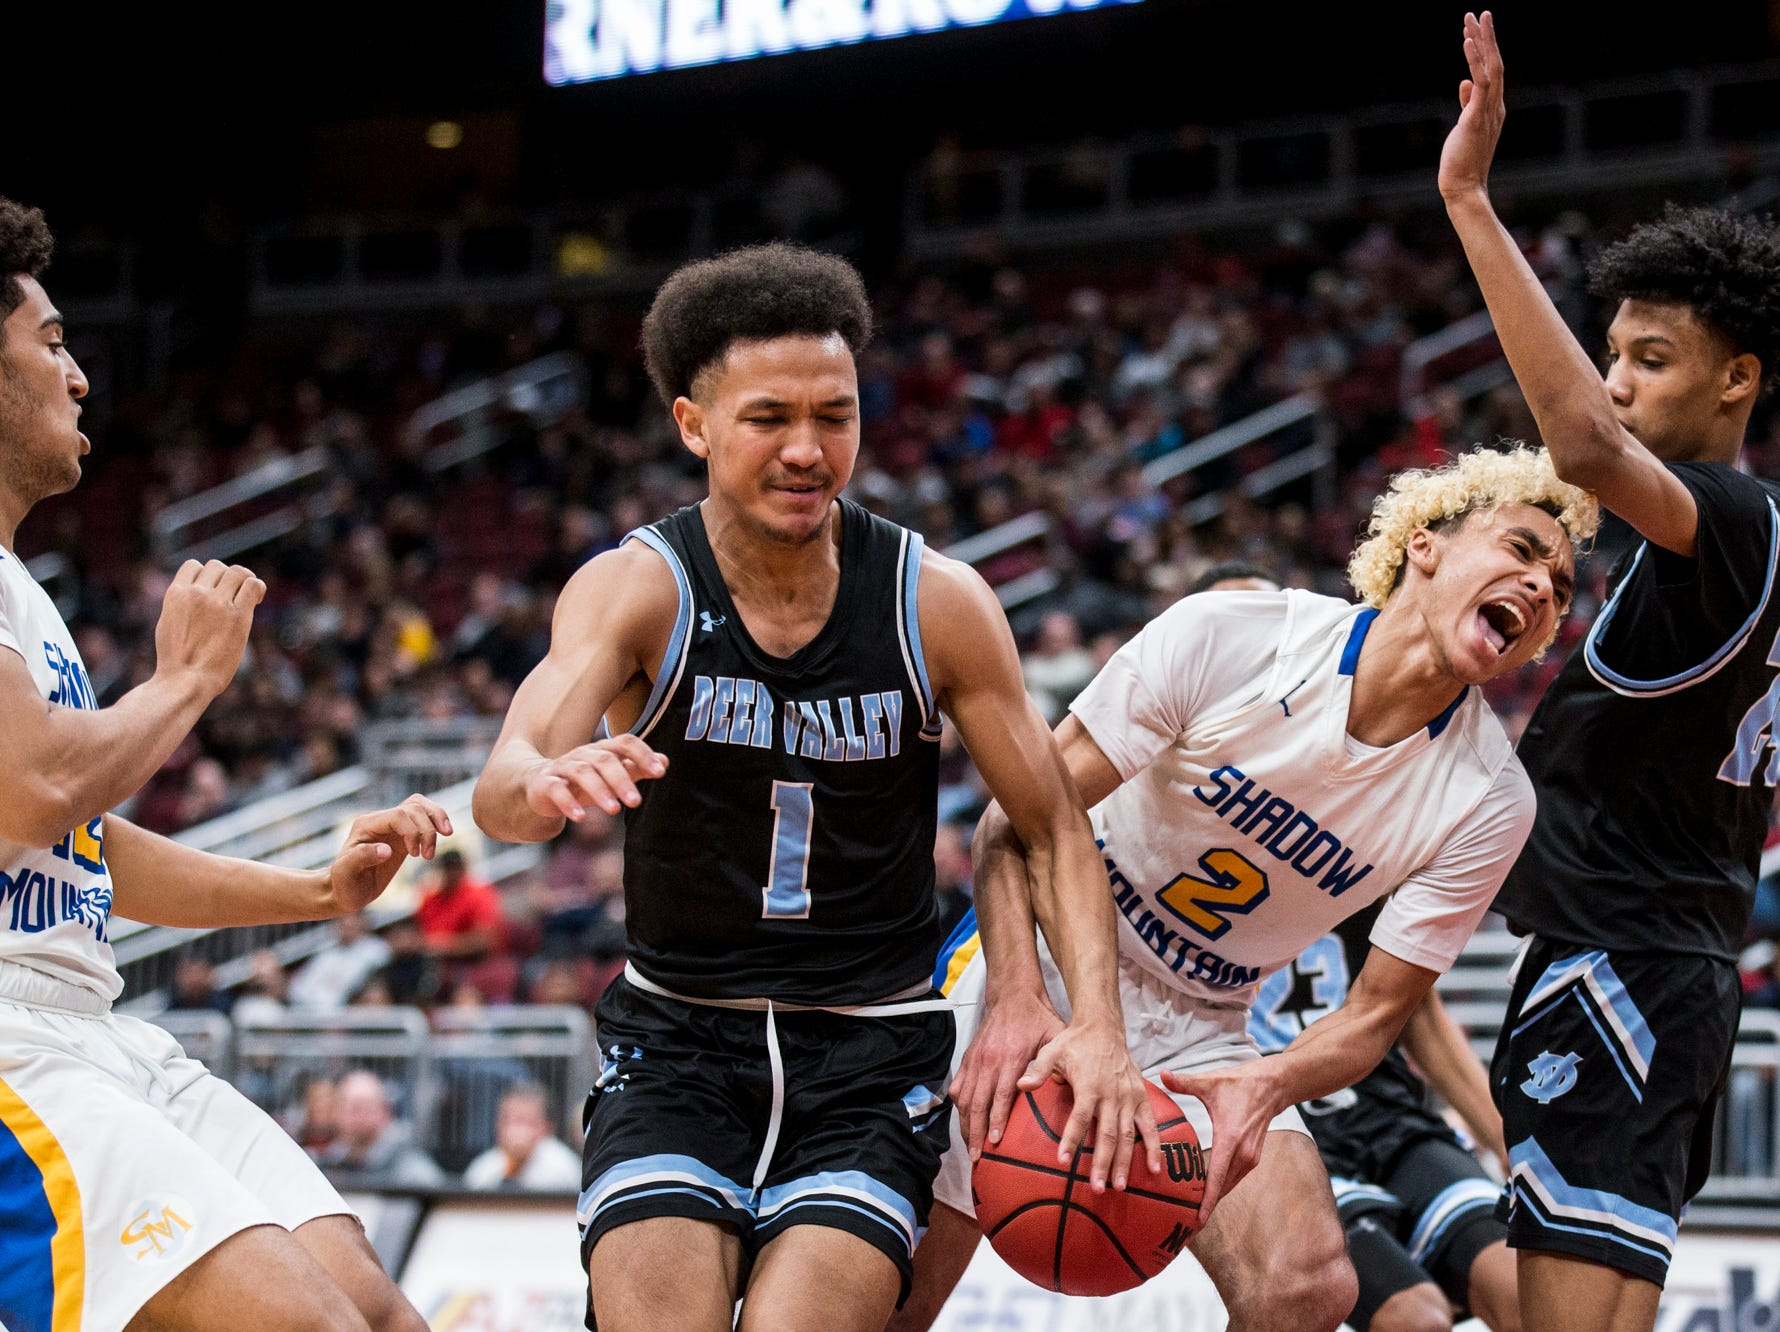 Shadow Mountain's Jaelen House drives to the basket against Deer Valley during the 4A boys basketball championship on Saturday, Feb. 23, 2019, at Gila River Arena in Glendale, Ariz.